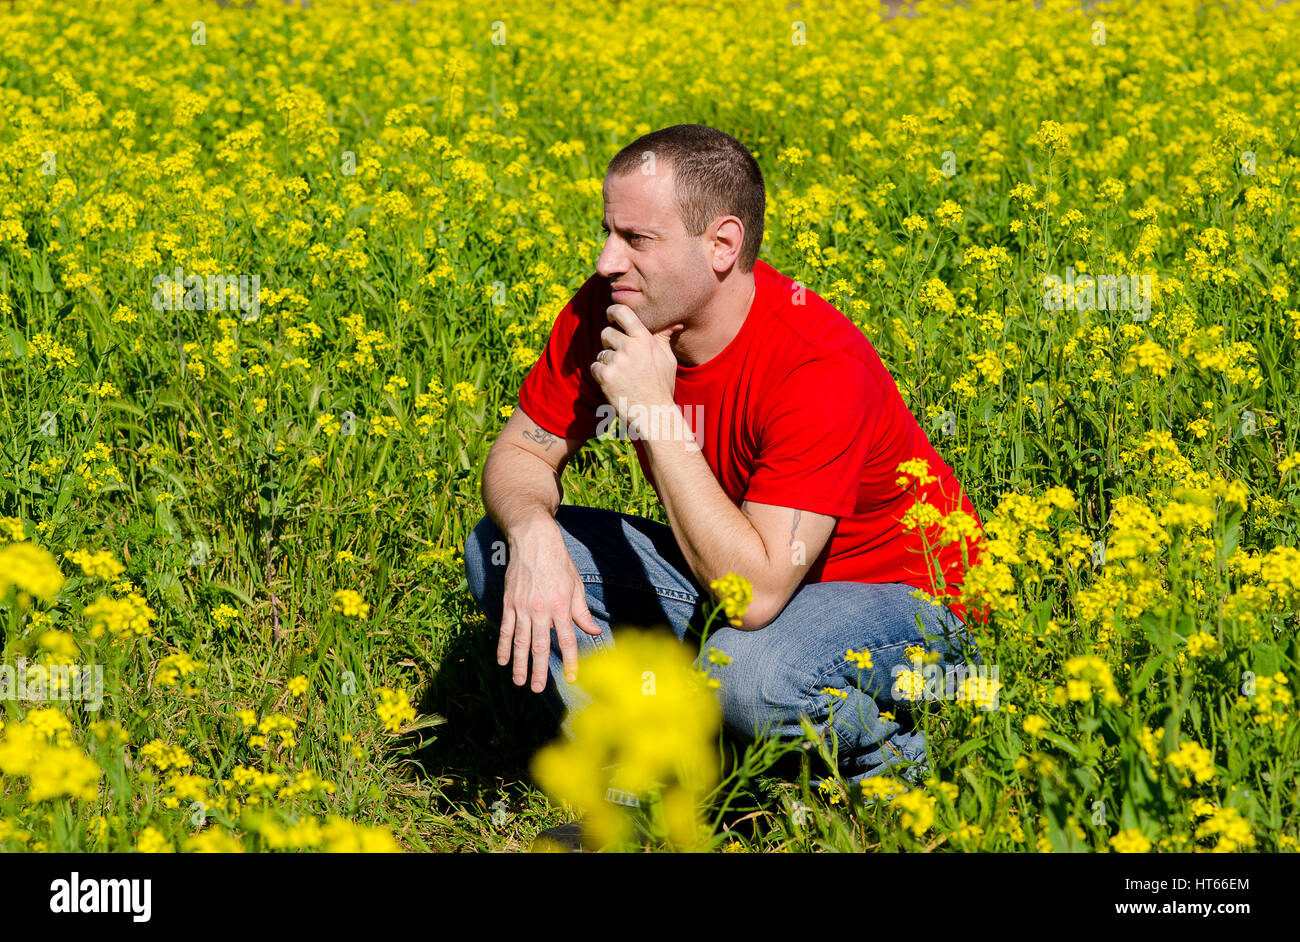 Man in a field of yellow flowers thinking of what tomorrow holds. - Stock Image